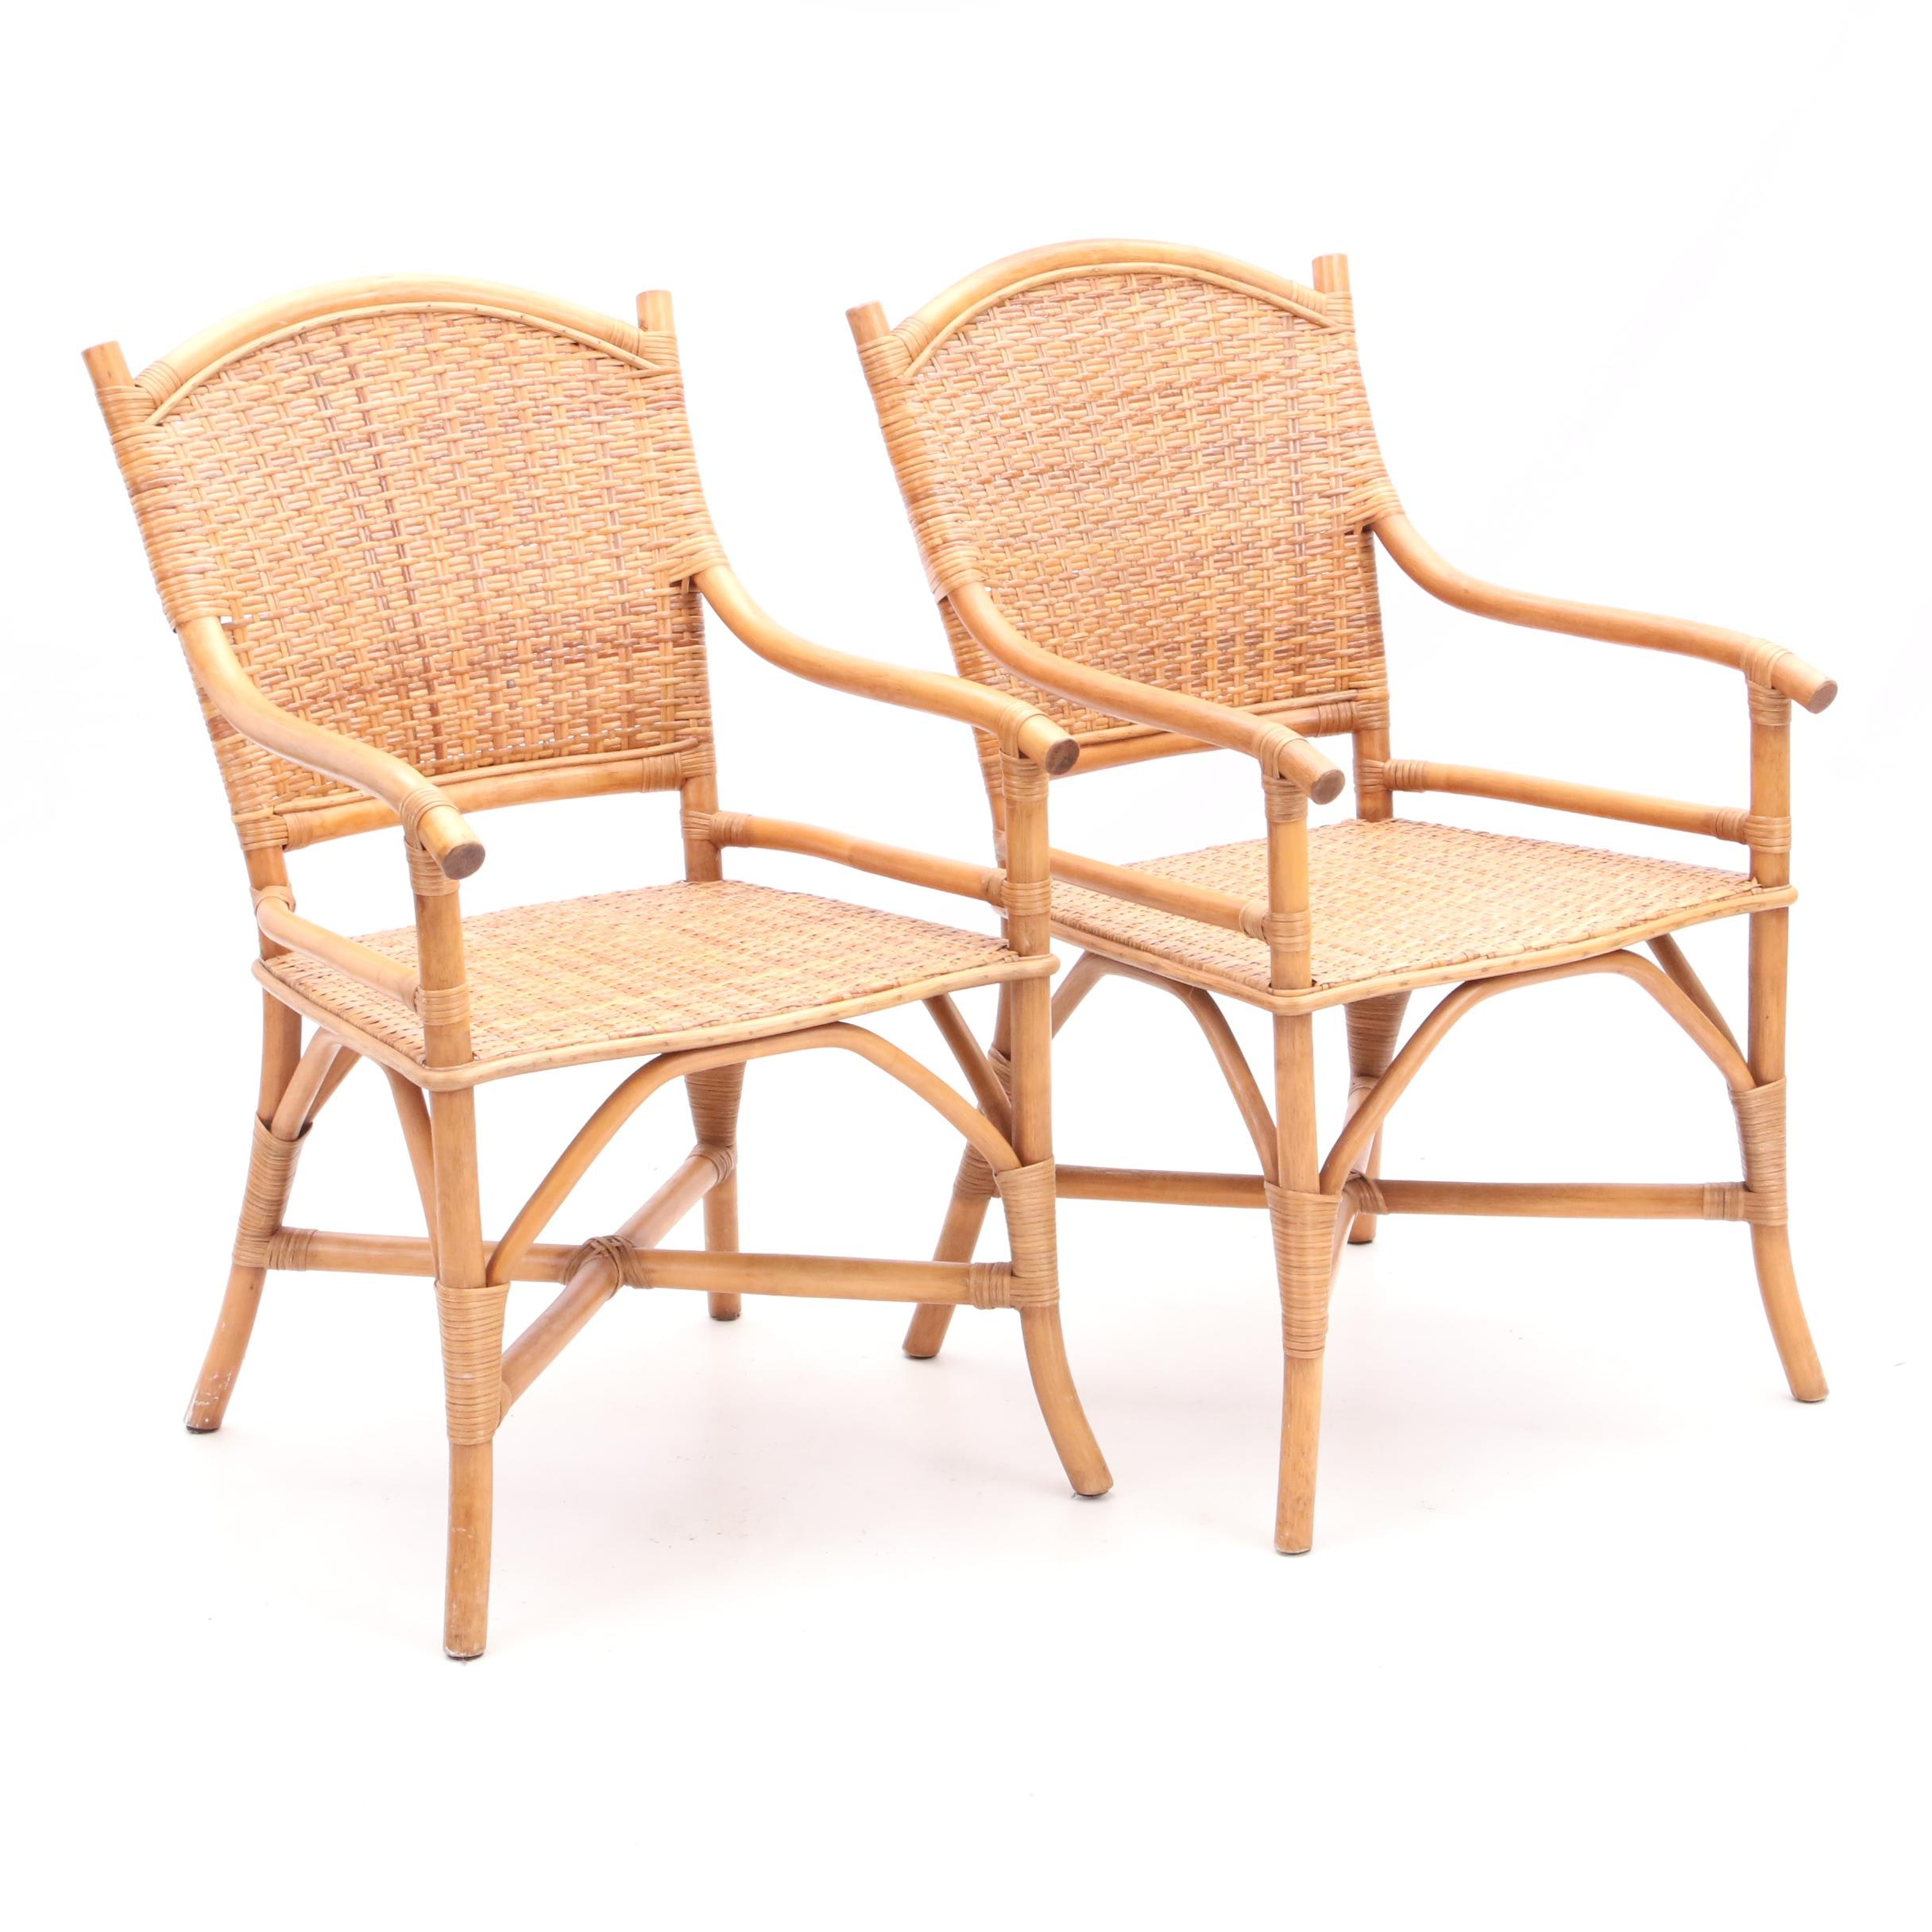 Two Woven Rattan Armchairs